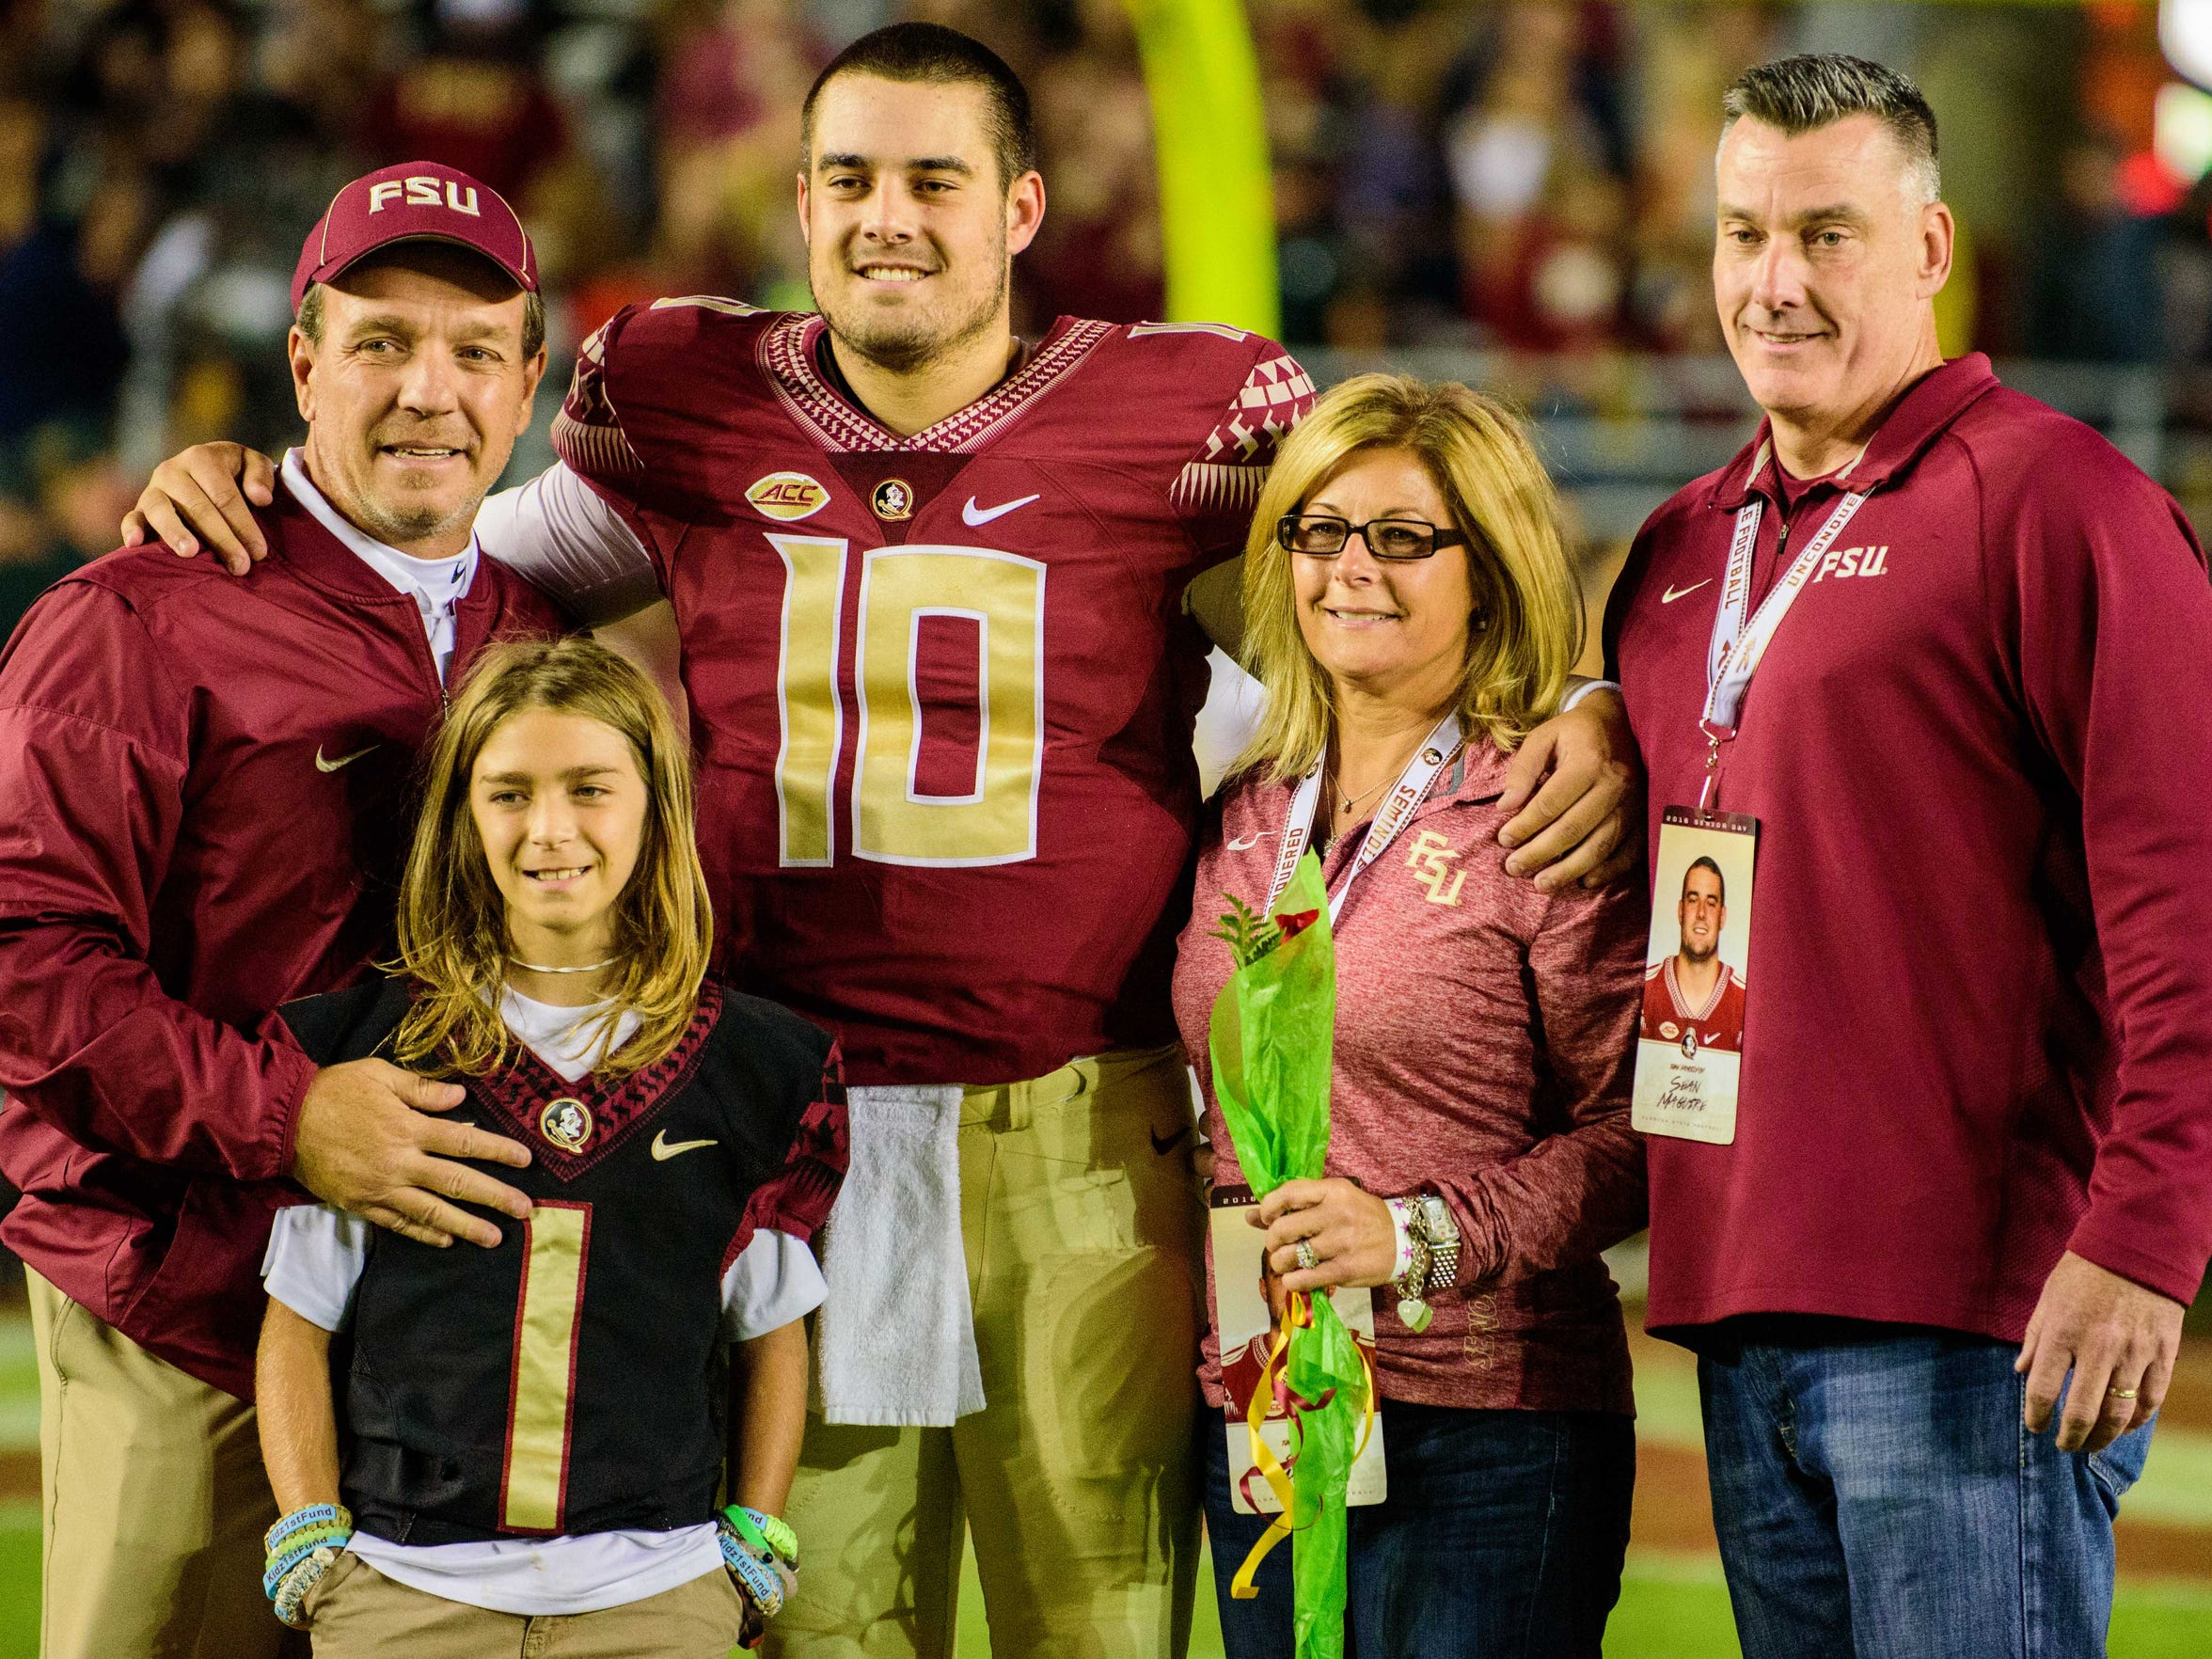 Sean Maguire (10) celebrates Senior Night with his family during the 45-7 Florida State University victory against Boston College on Fri., Nov. 11, 2016 at Doak Campbell Stadium, in Tallahassee, FL.